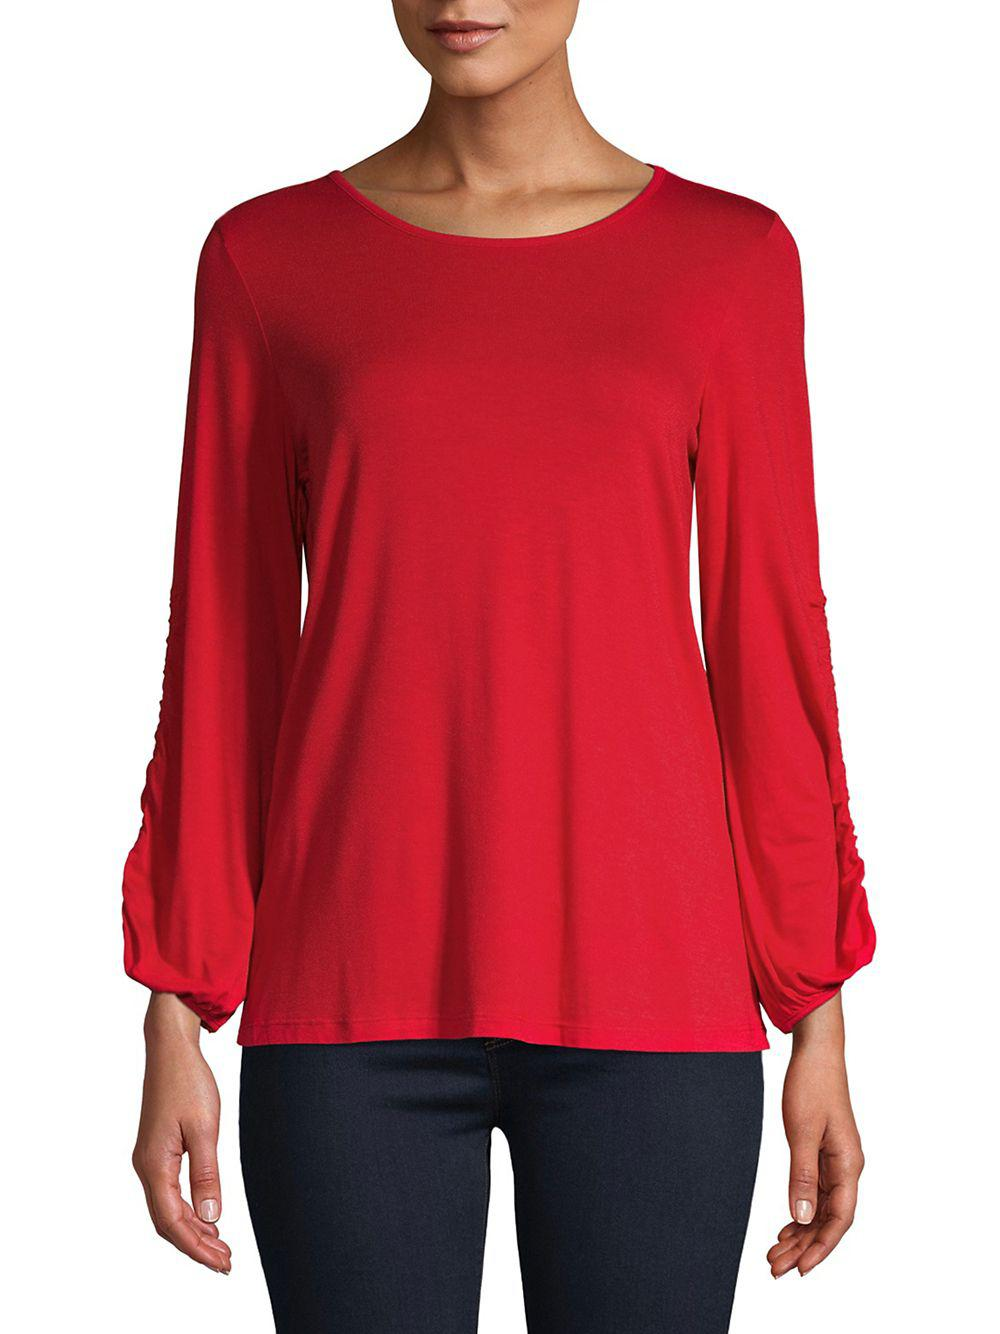 83c2f939dee0c Lyst - Lord   Taylor Drawstring-sleeve Heathered Top in Red